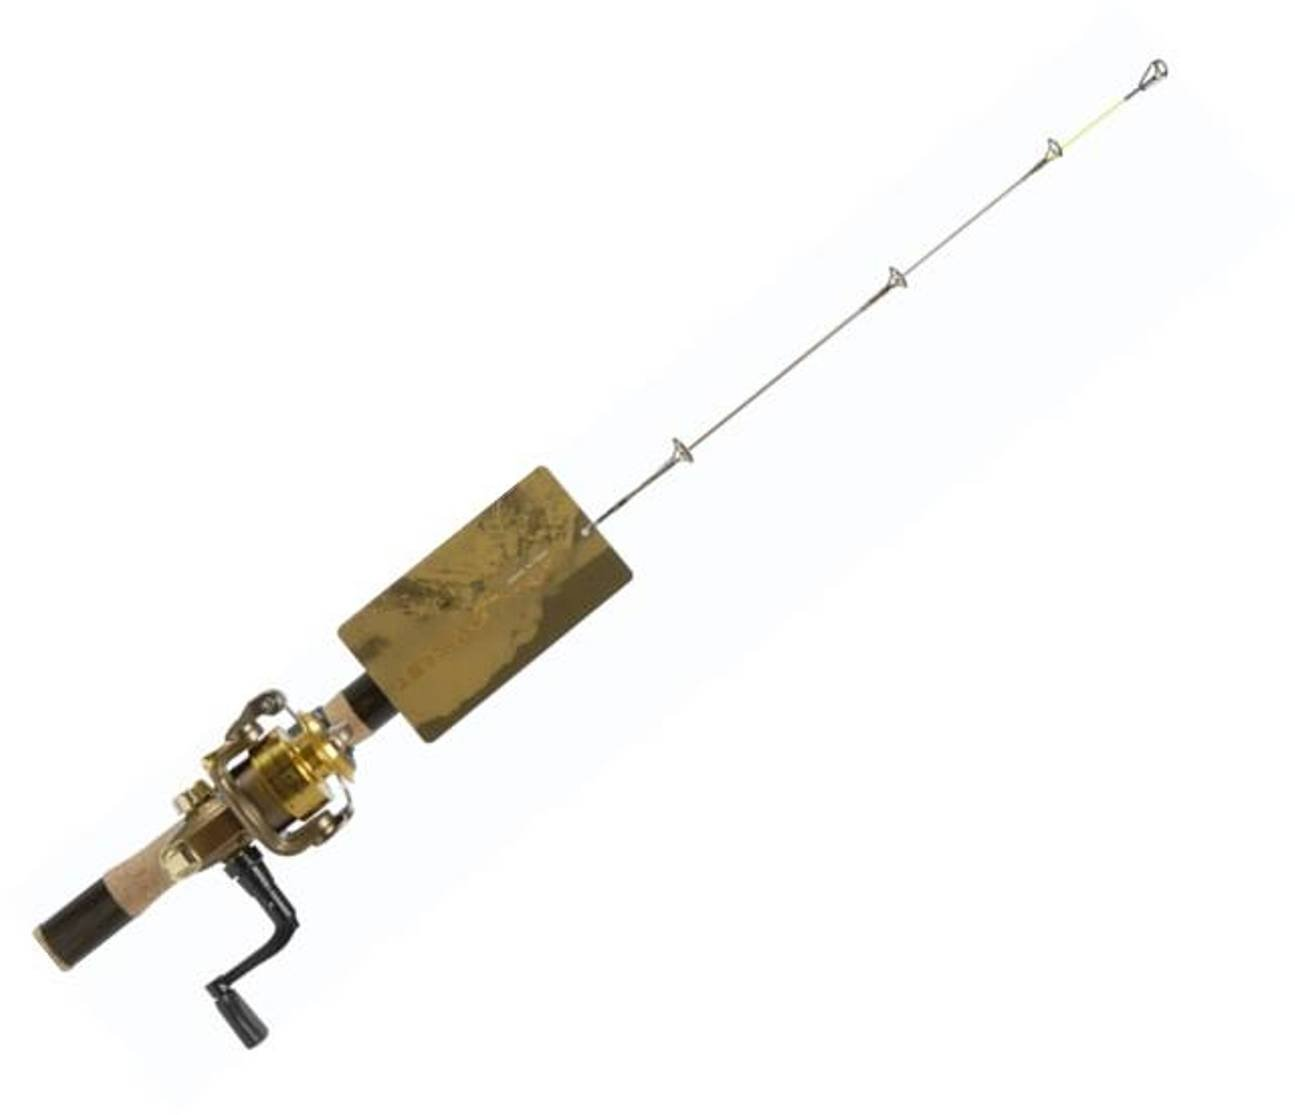 Ice fishing poles expert advice on choosing with video for Ice fishing poles